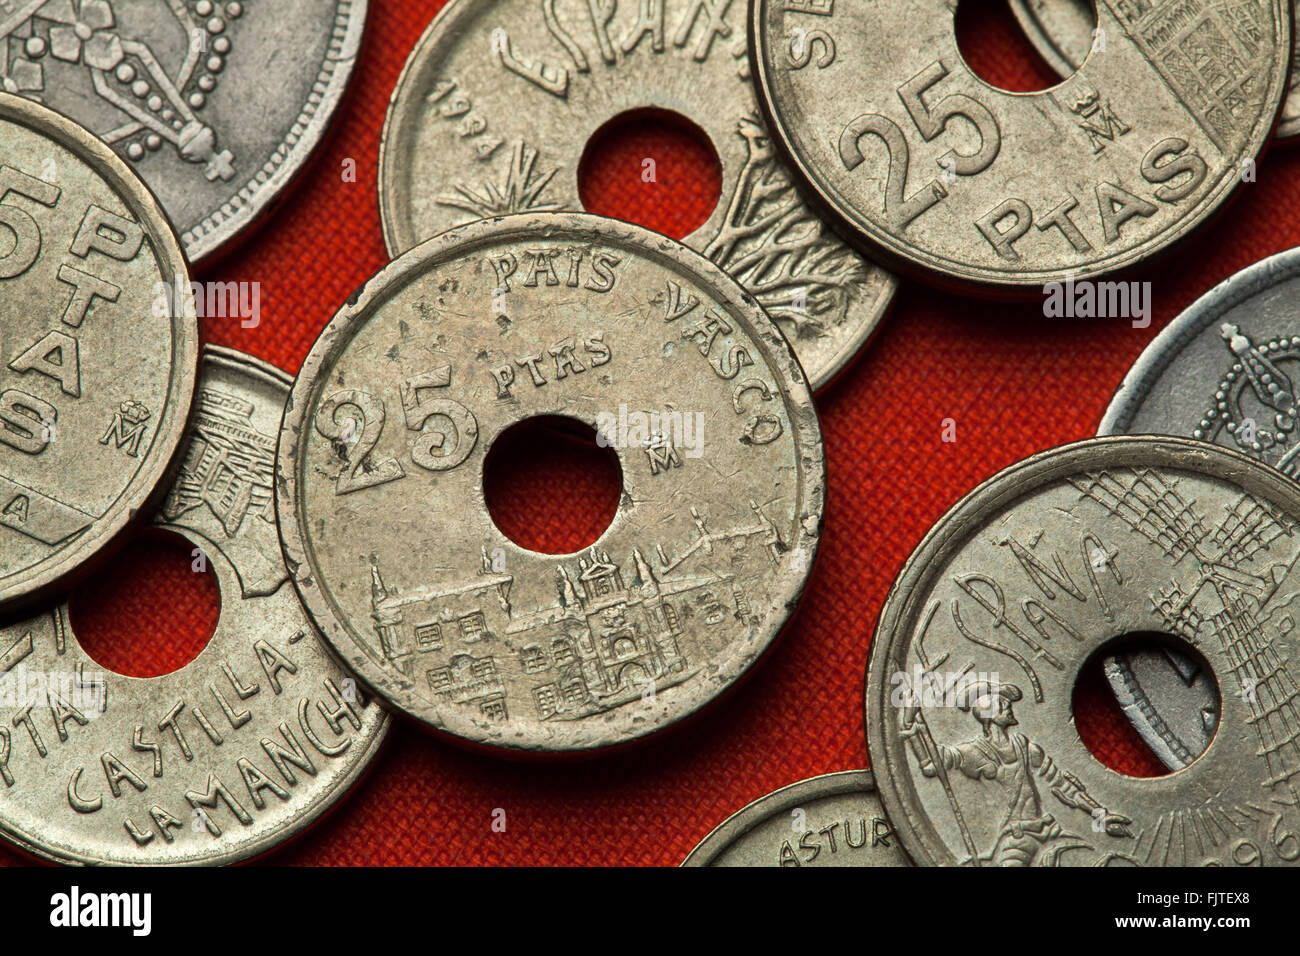 Coins of Spain. Onate University, Basque Country, Spain depicted in the Spanish 25 peseta coin (1993). - Stock Image